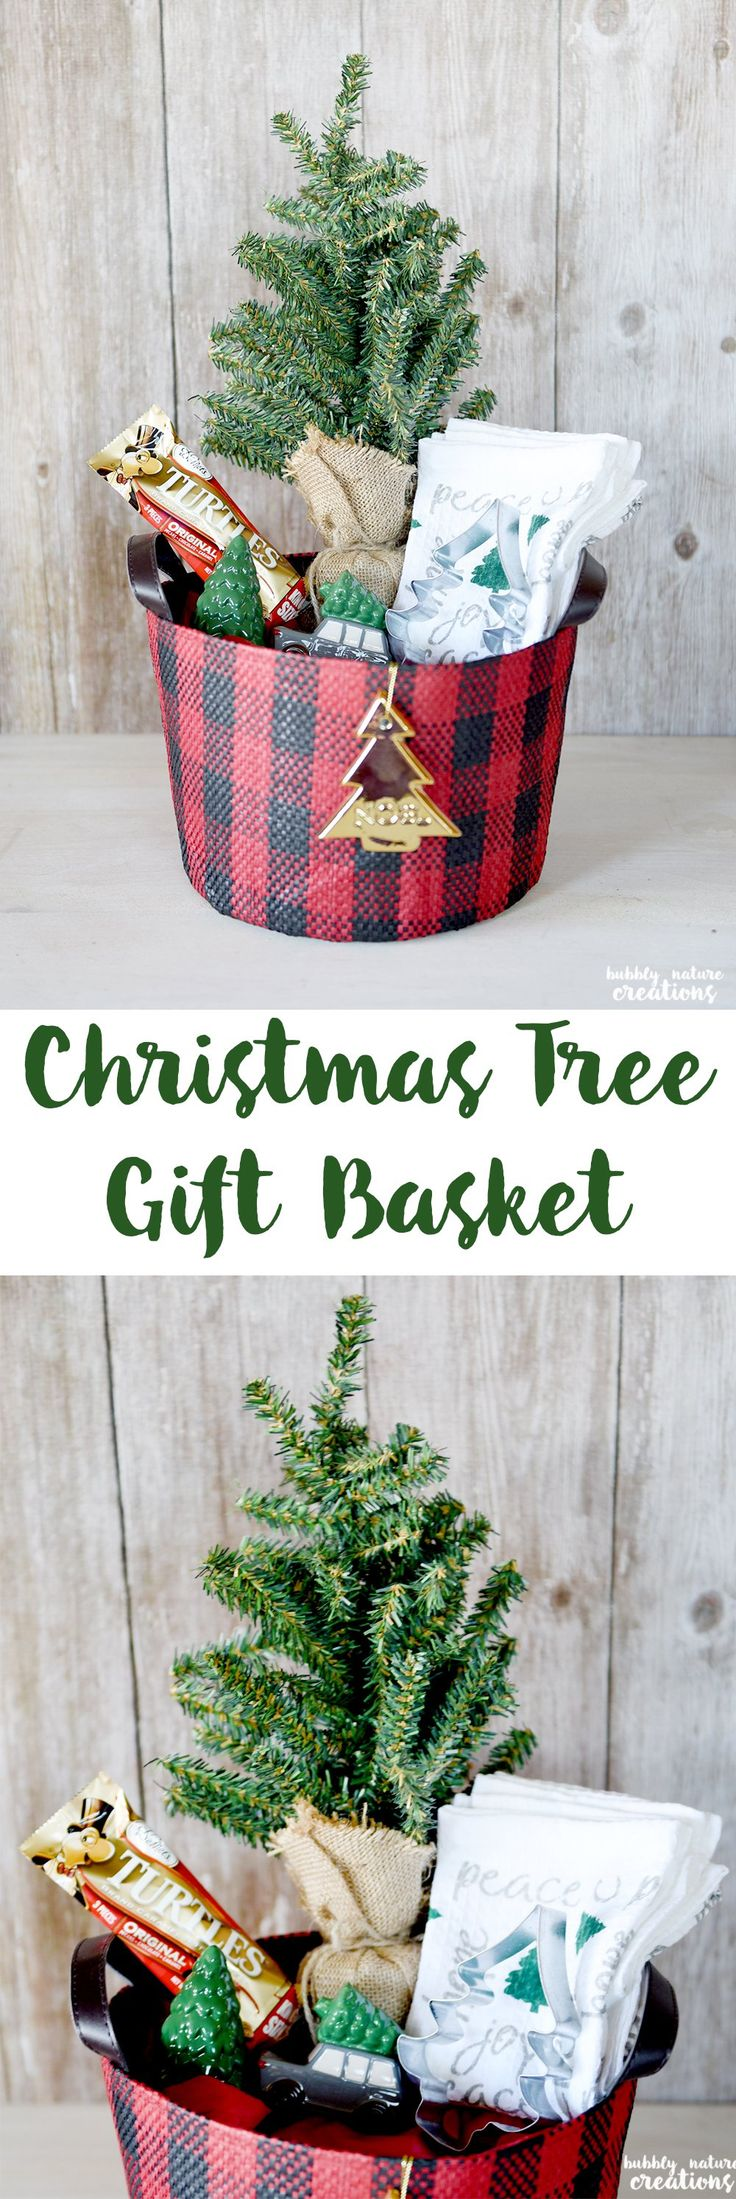 98 best CREATIVE GIFT IDEAS images on Pinterest | Creative gifts ...